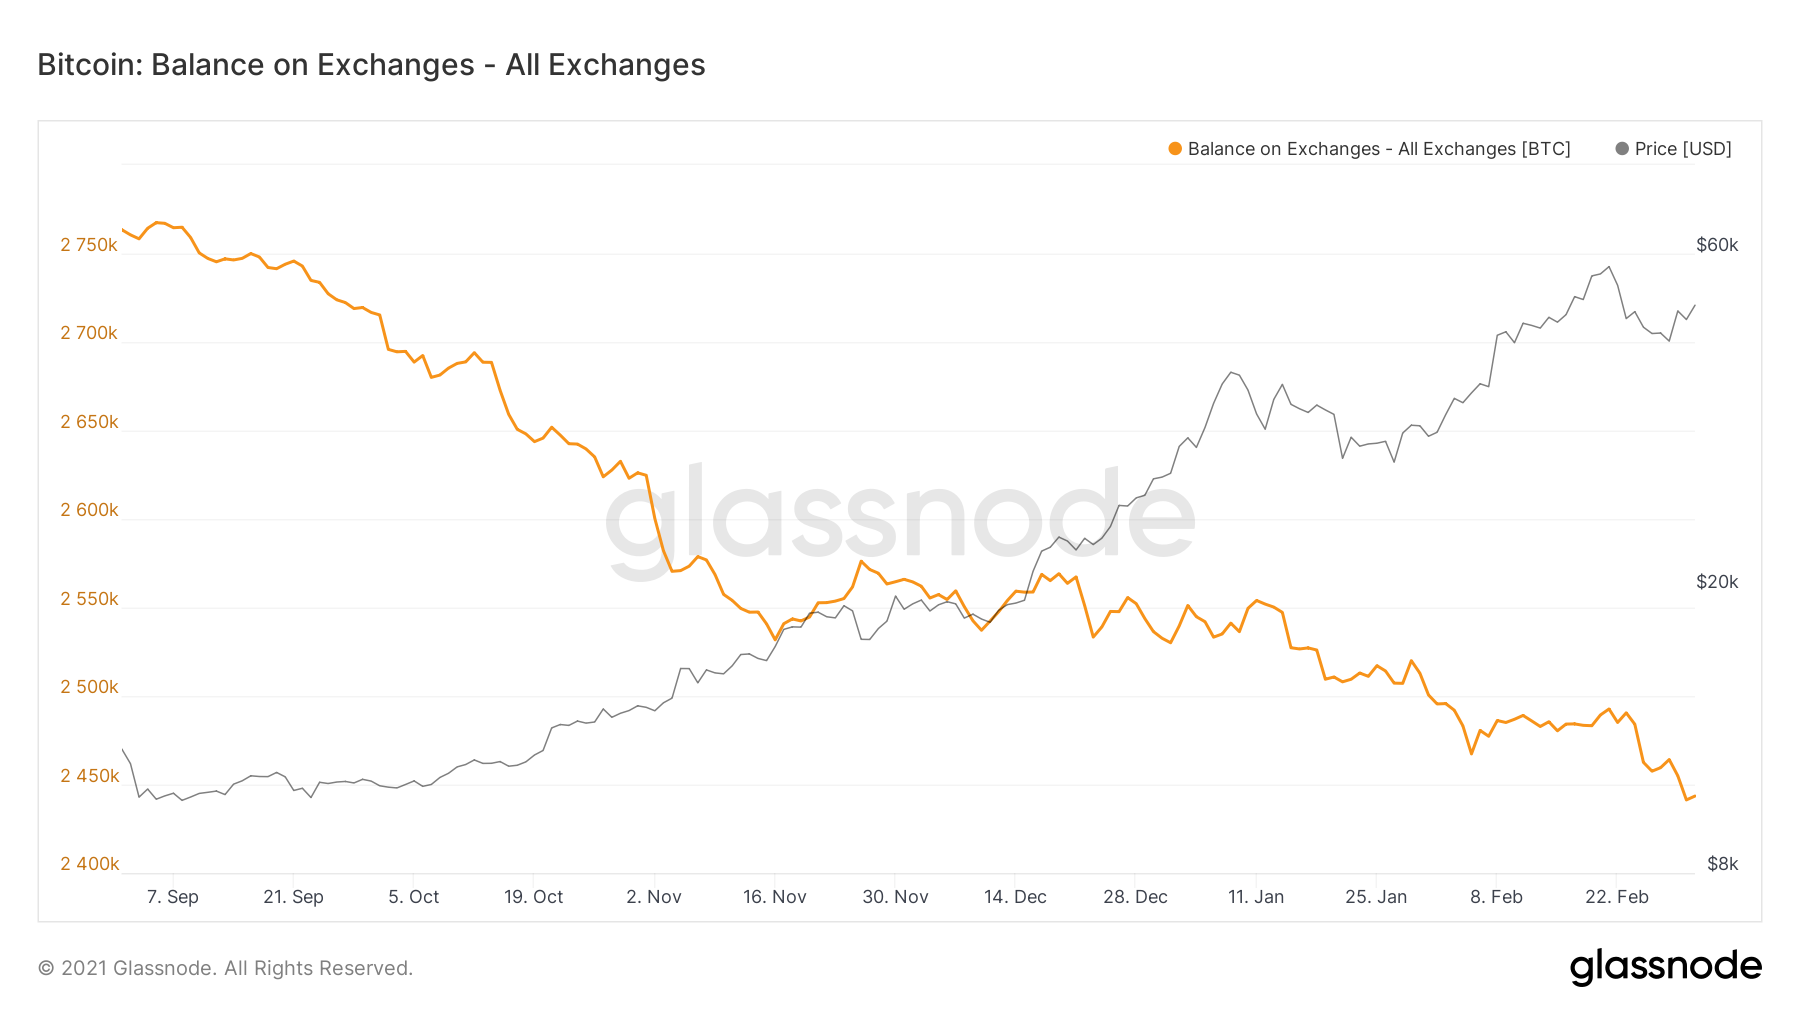 Bitcoin on exchanges